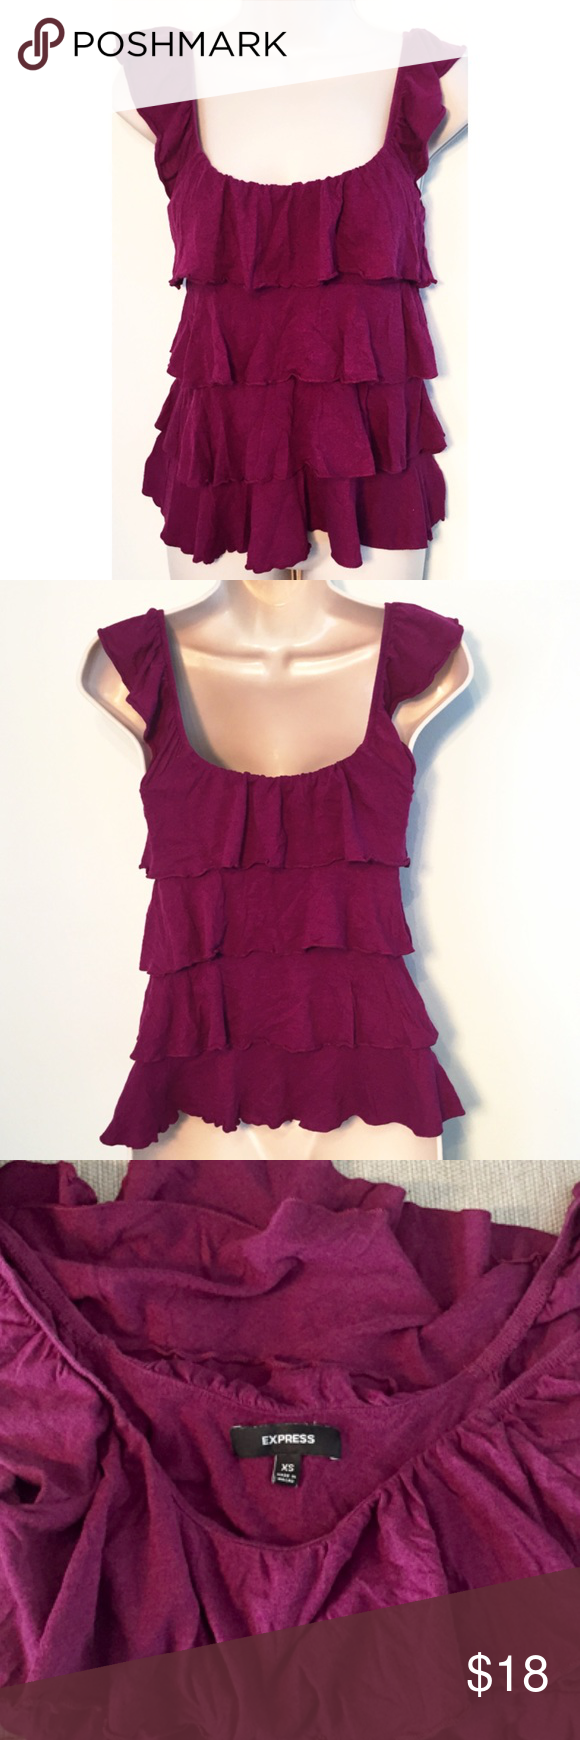 """❣BOGO 1/2 off❣🆕Express tiered ruffle tank top NWOT, flawless. Super soft cotton/modal blend. Size small. Approx 23"""" long & 15"""" flat across the bust. Very stretchy. ✖️I do NOT MODEL✖️ 🔴Bundle to save! 🔴NO TRADES. 🔴REASONABLE offers welcome via offer button. Express Tops Tank Tops"""